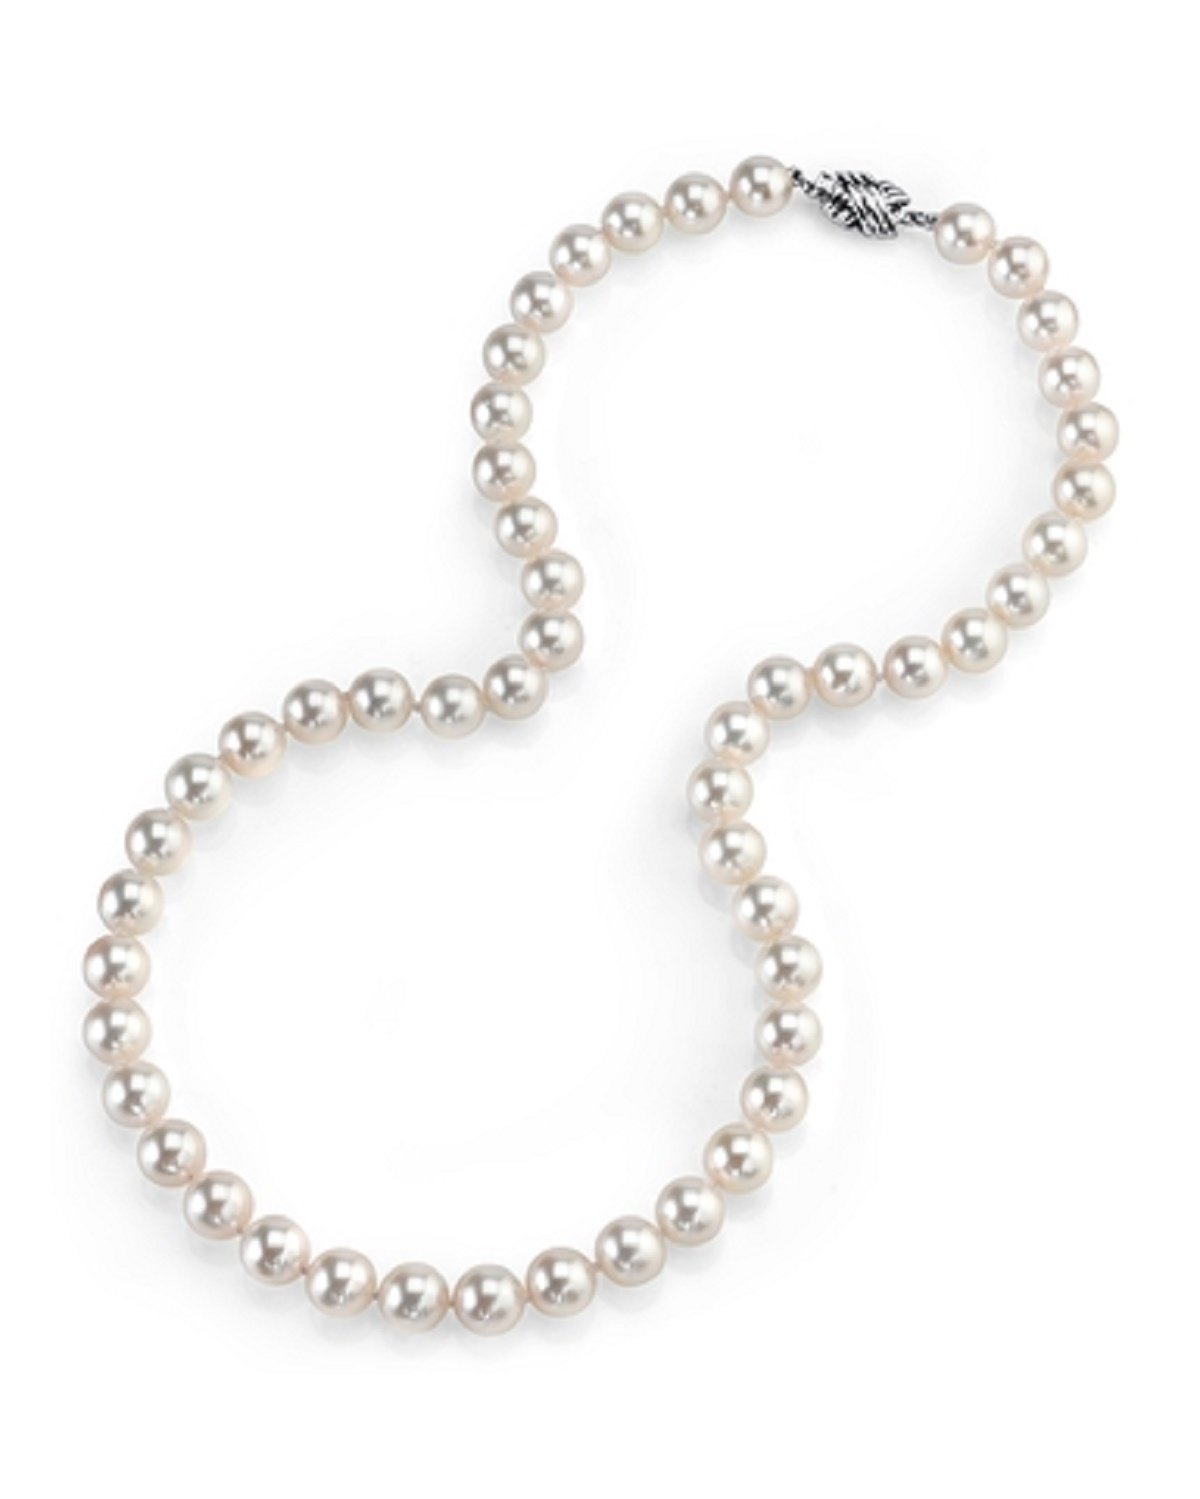 14K Gold 7.5-8.0 Japanese Akoya Saltwater White Cultured Pearl Necklace - AAA Quality, 16'' Choker Length